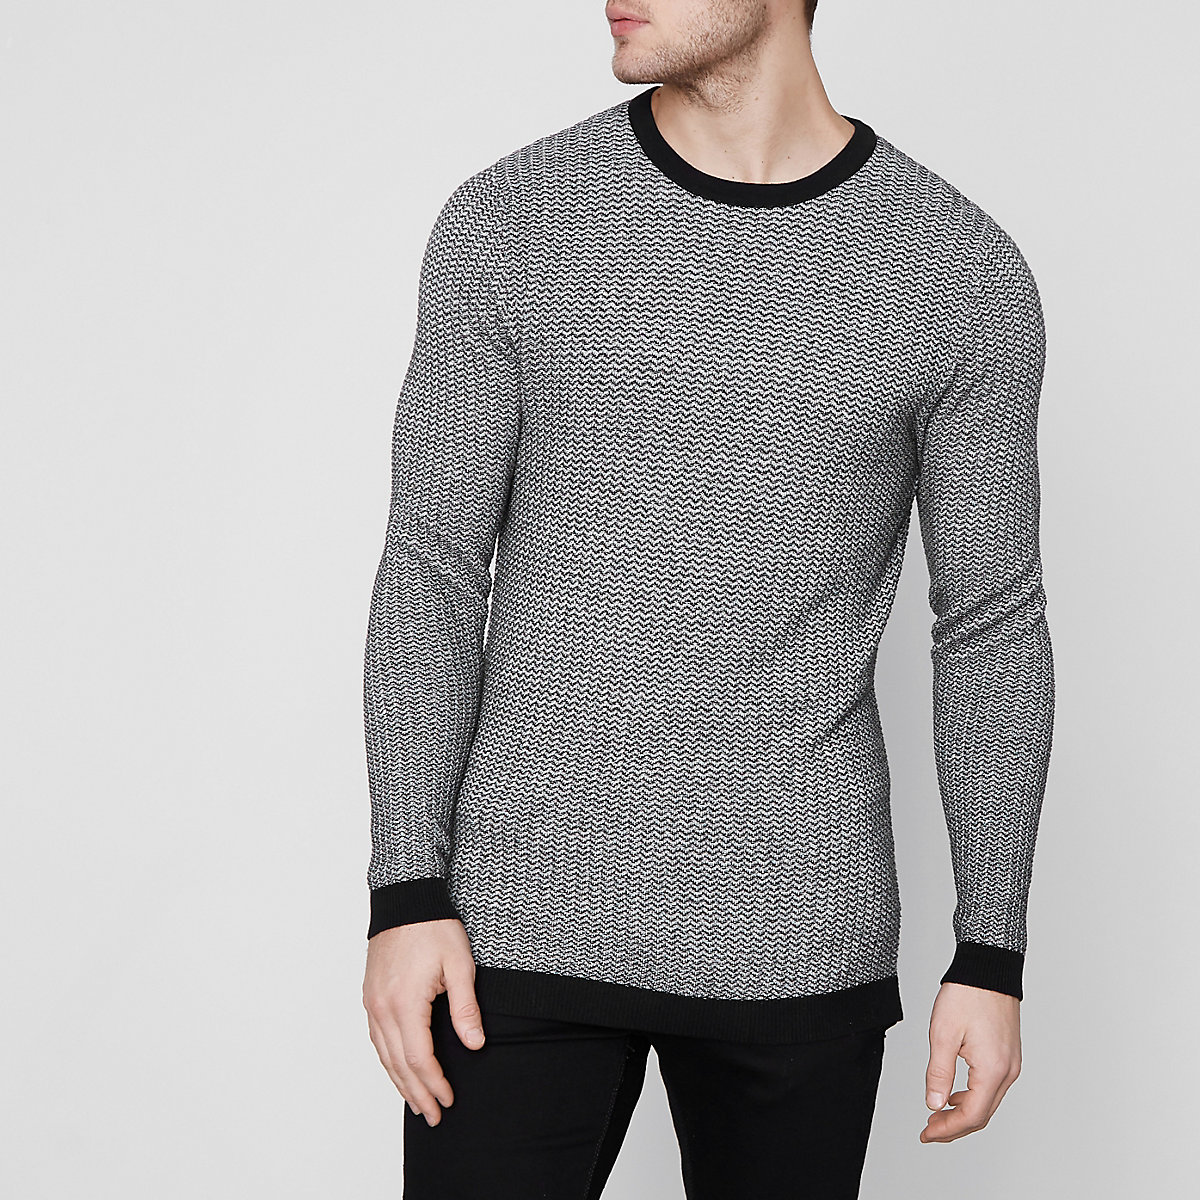 Jack & Jones Premium grey crew neck sweater